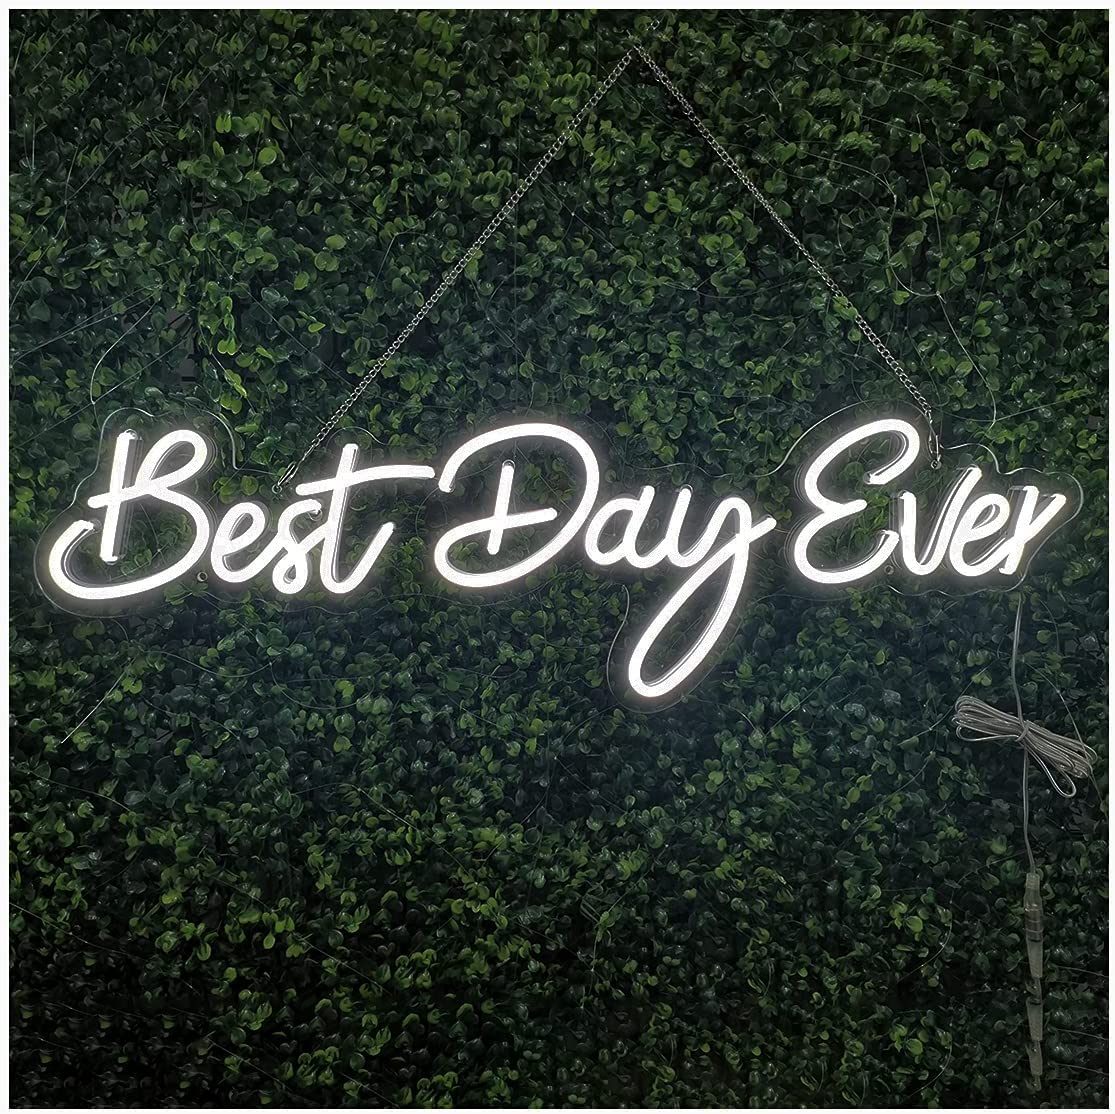 SYLHOME LED Neon Light Signs 12V Best Day Ever 26